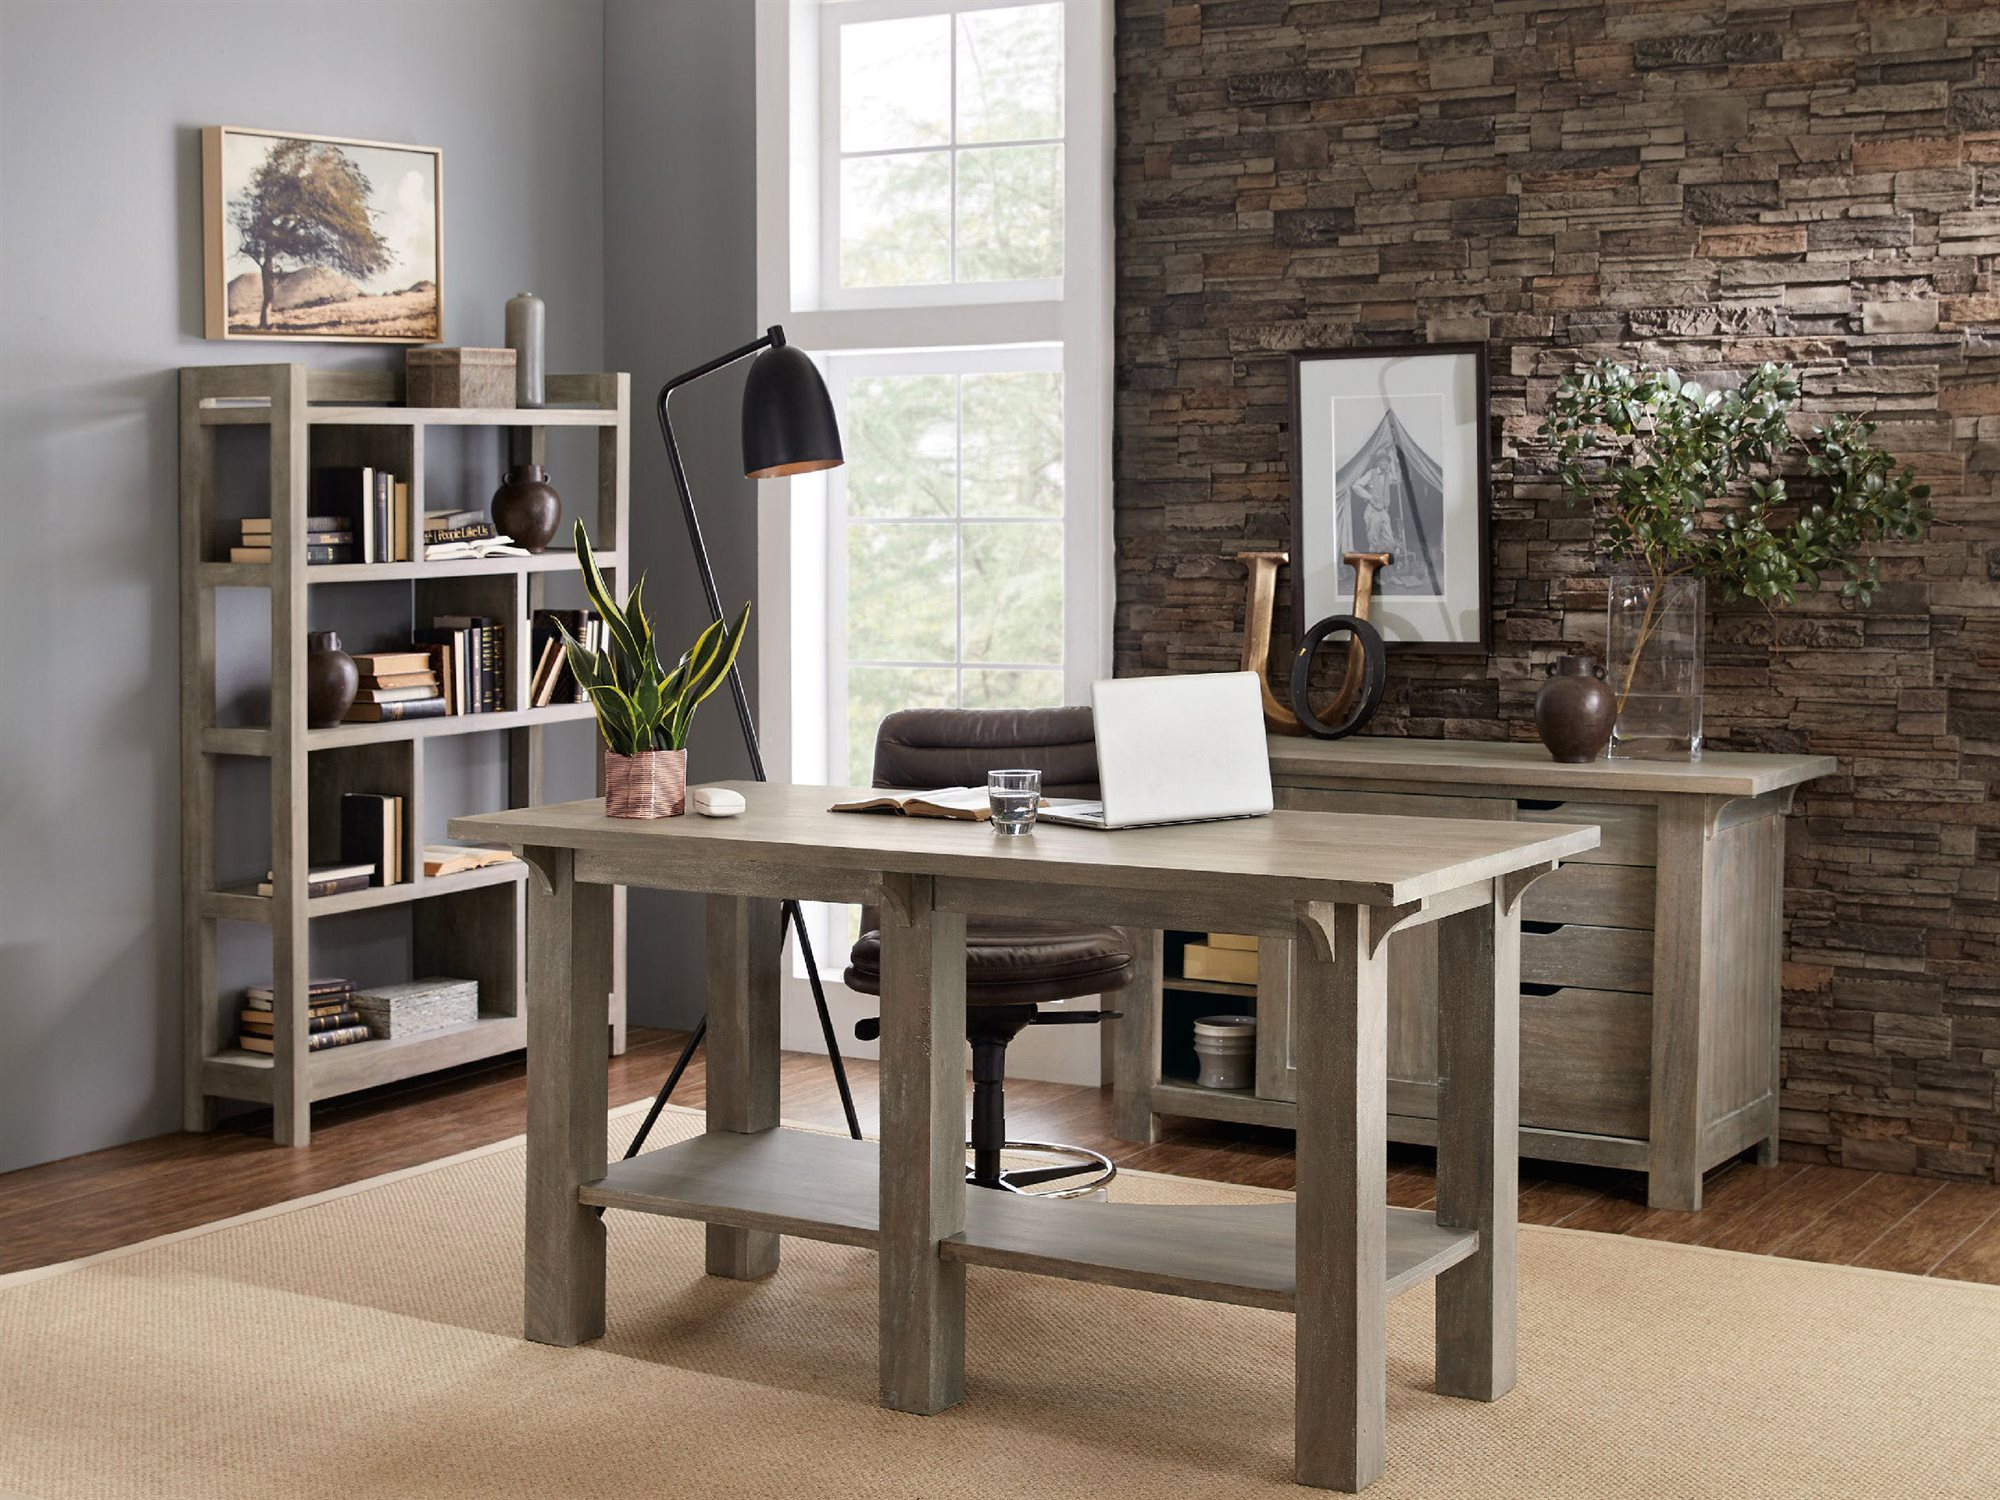 Hom Office Furniture: Hooker Furniture Urban Farmhouse Home Office Set